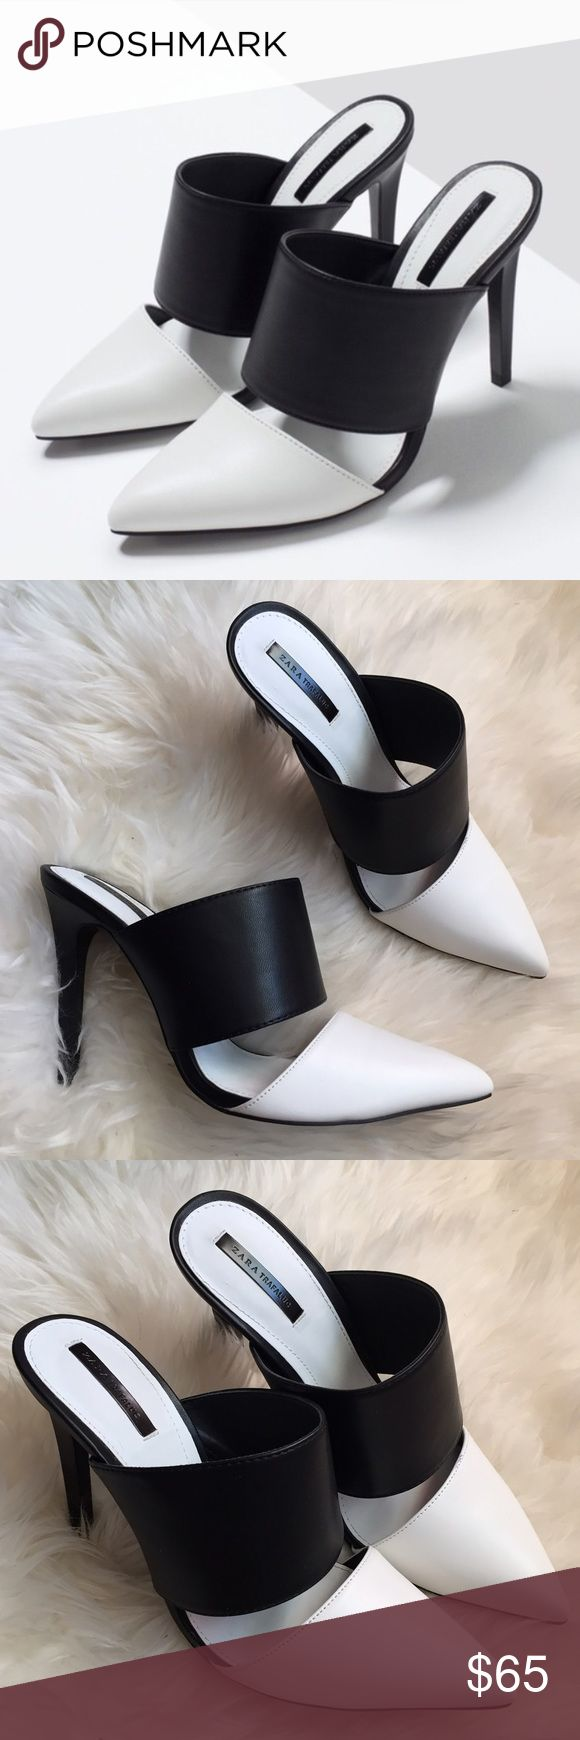 "Zara Black & White Pointed Toe Mules-Euro 40 New in box, excellent condition, however small mark on part of toe area at seam (shown in last pic) hardly noticeable. Black and white colorblock mules. Faux leather material. Pointed toe.  Heel height approx 4 1/4"" ❌NO TRADES OR PAYPAL❌ Zara Shoes Mules & Clogs"